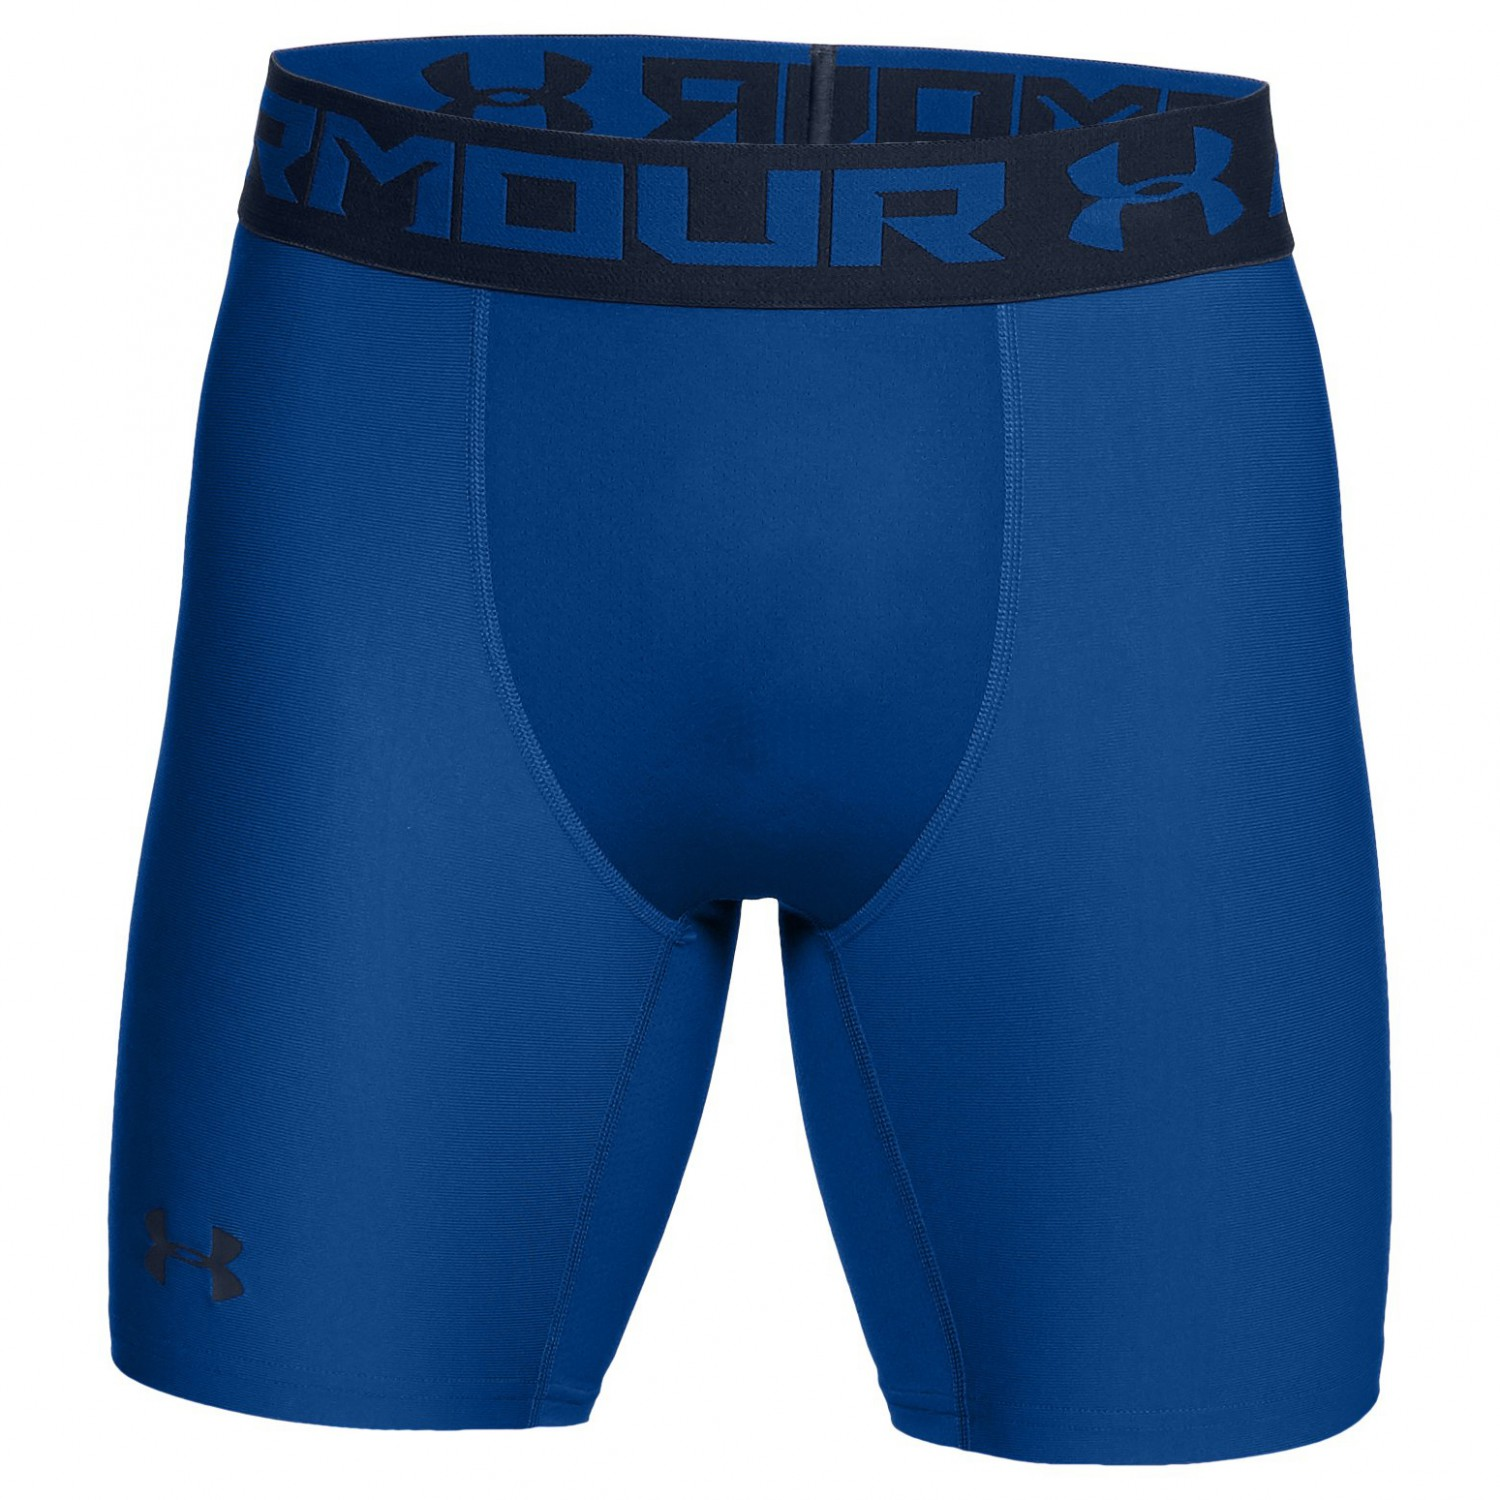 ffab3bce37 Under Armour HG Armour 2.0 Comp Short - Compression Base Layer Men's ...